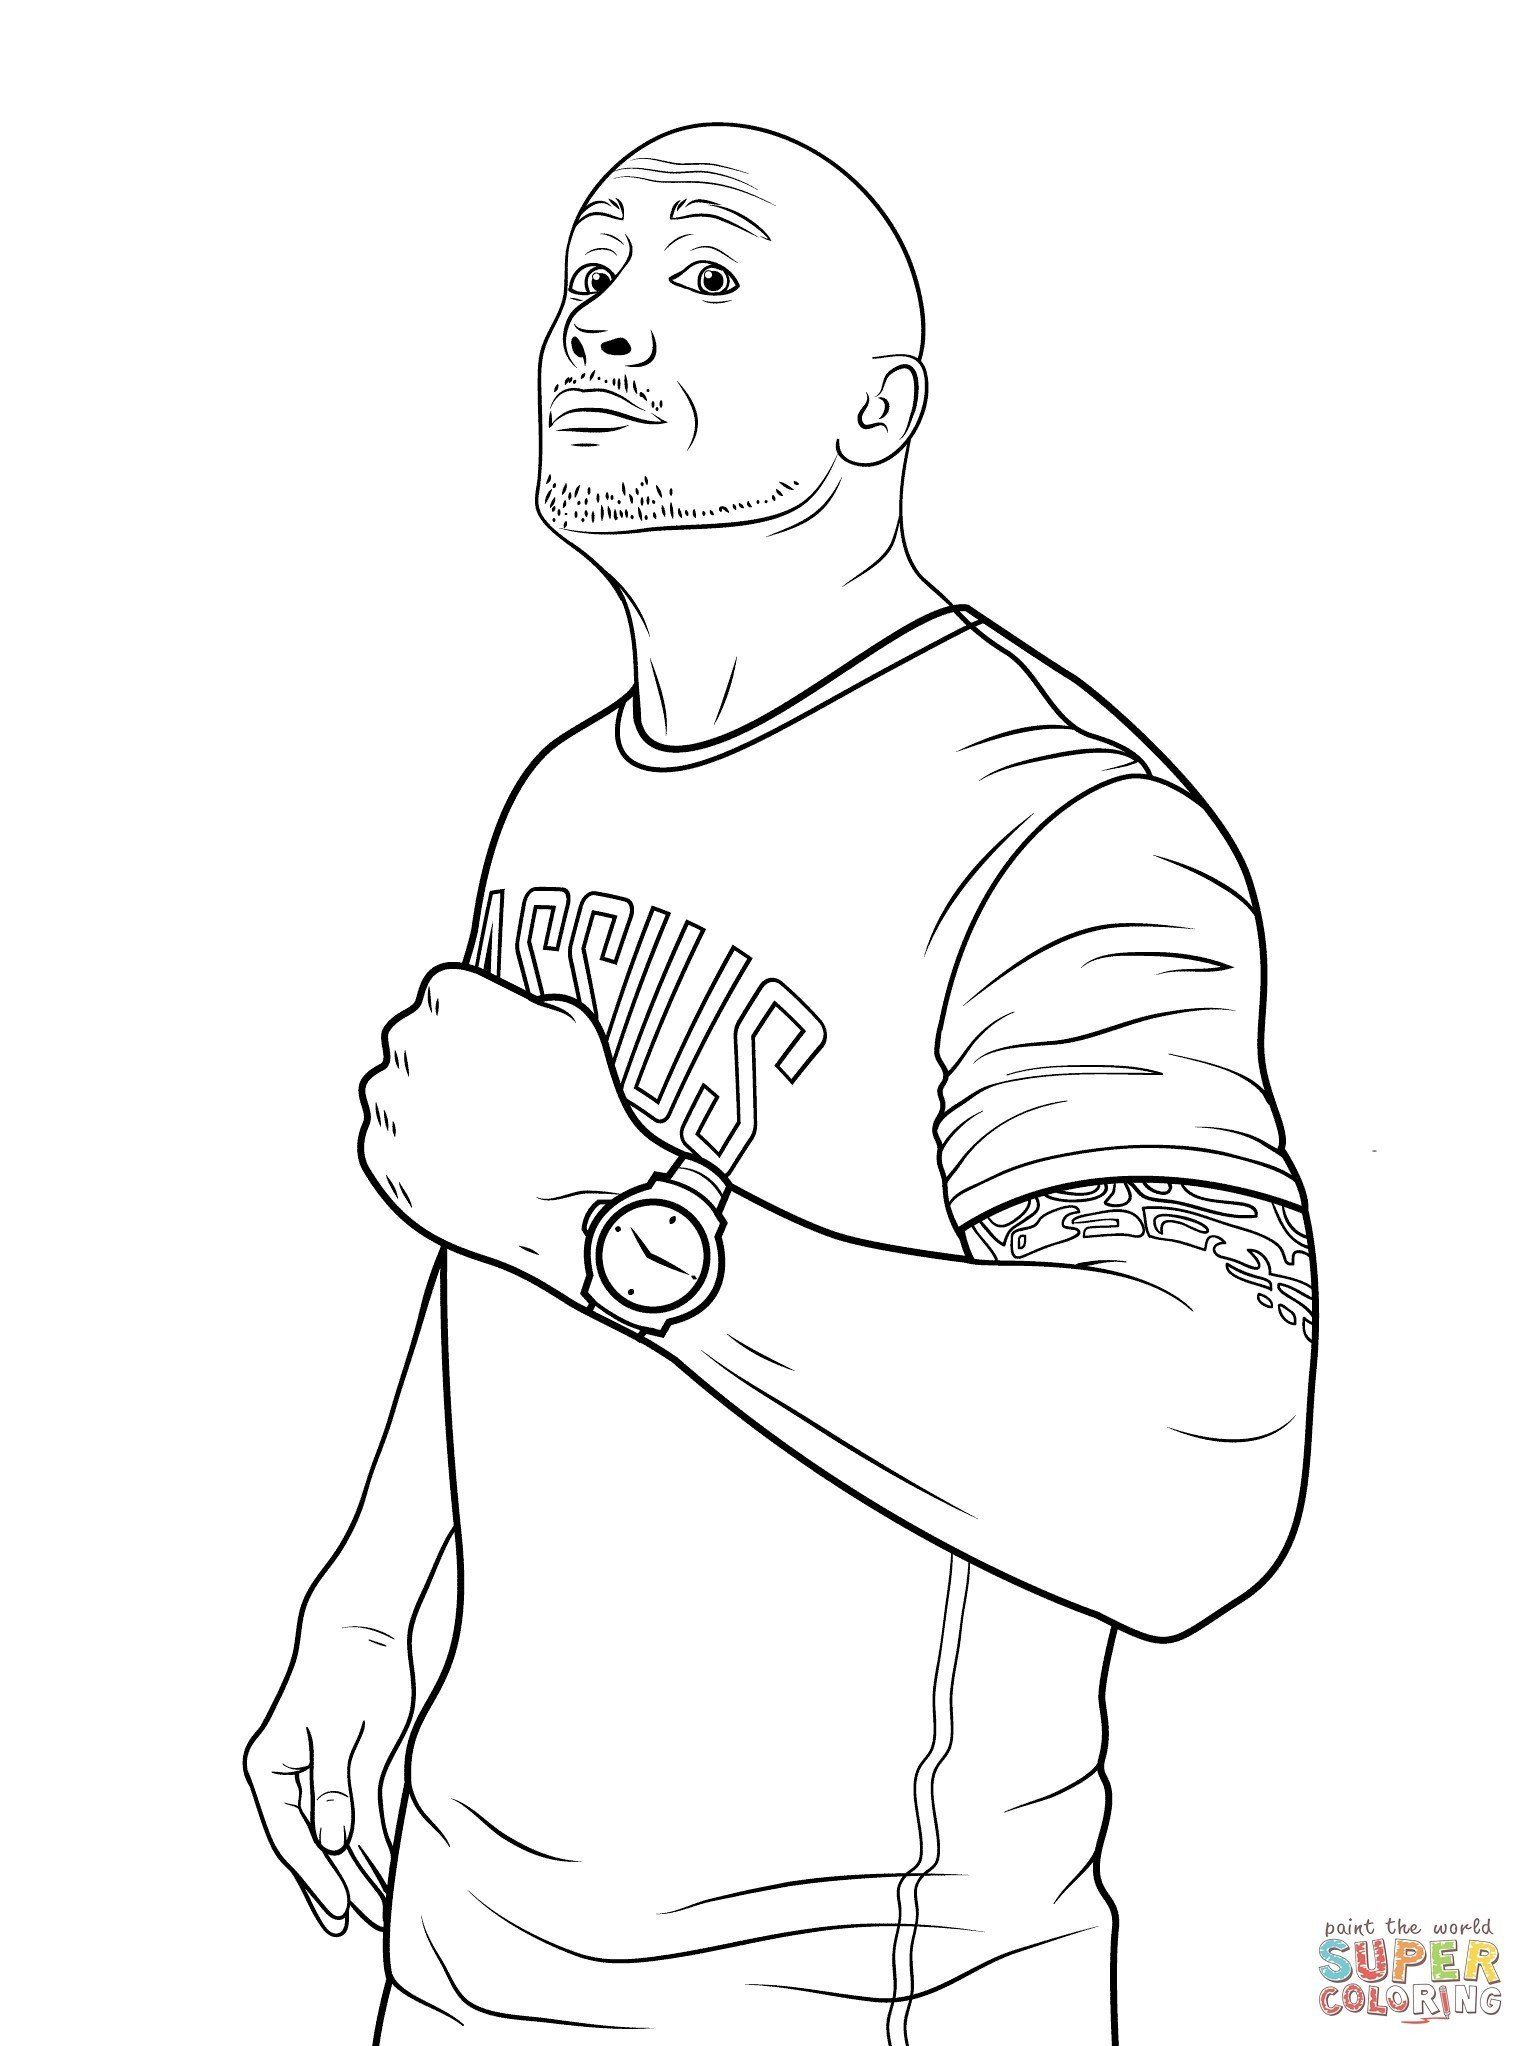 John Cena Coloring Pages Beautiful Coloring Book Kids Download Line In 2020 Wwe Coloring Pages Coloring Books Kids Coloring Books